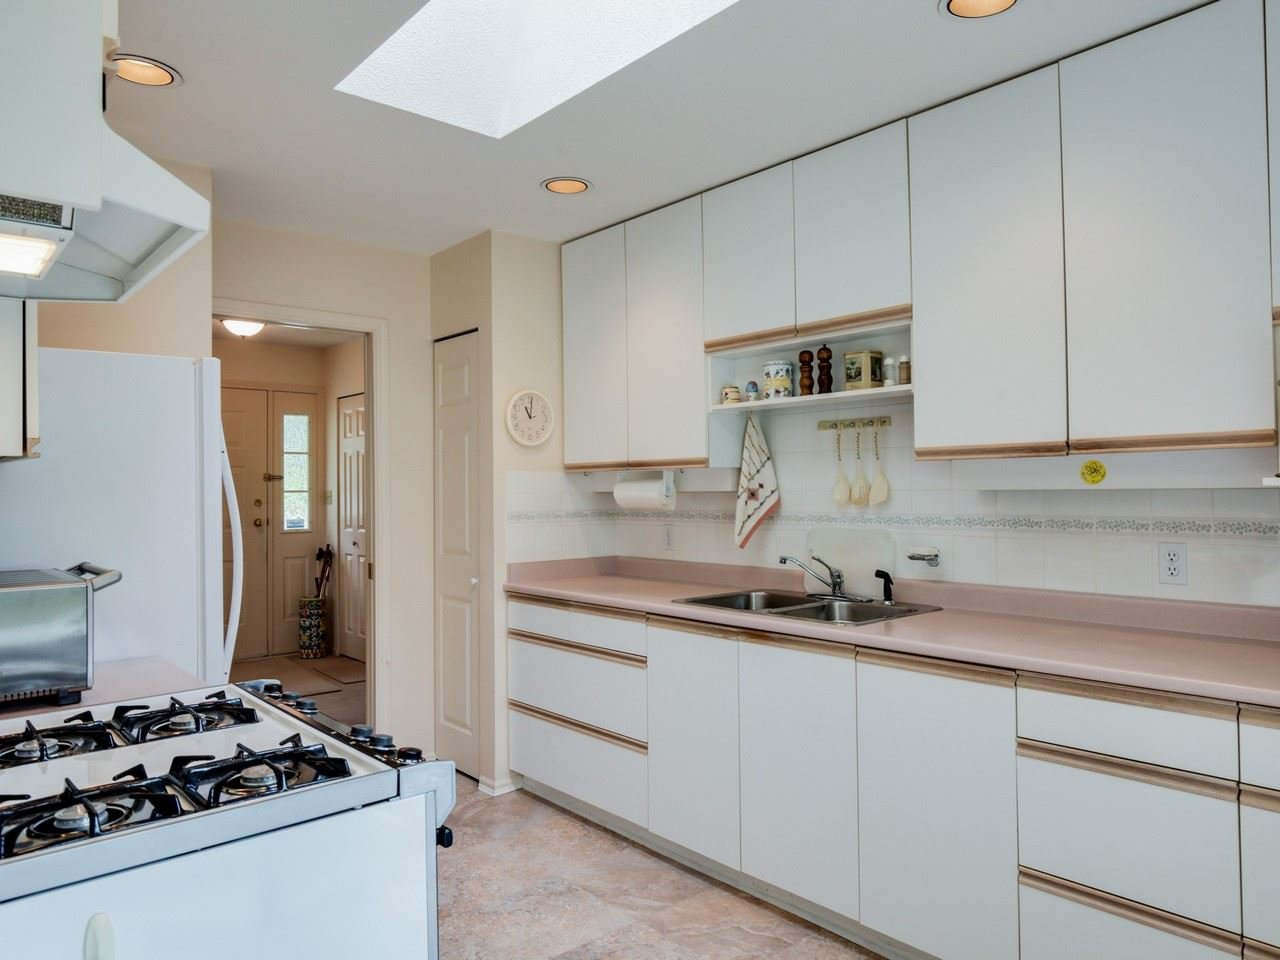 Photo 8: Photos: 4120 LYNN VALLEY ROAD in North Vancouver: Lynn Valley House for sale : MLS®# R2100168